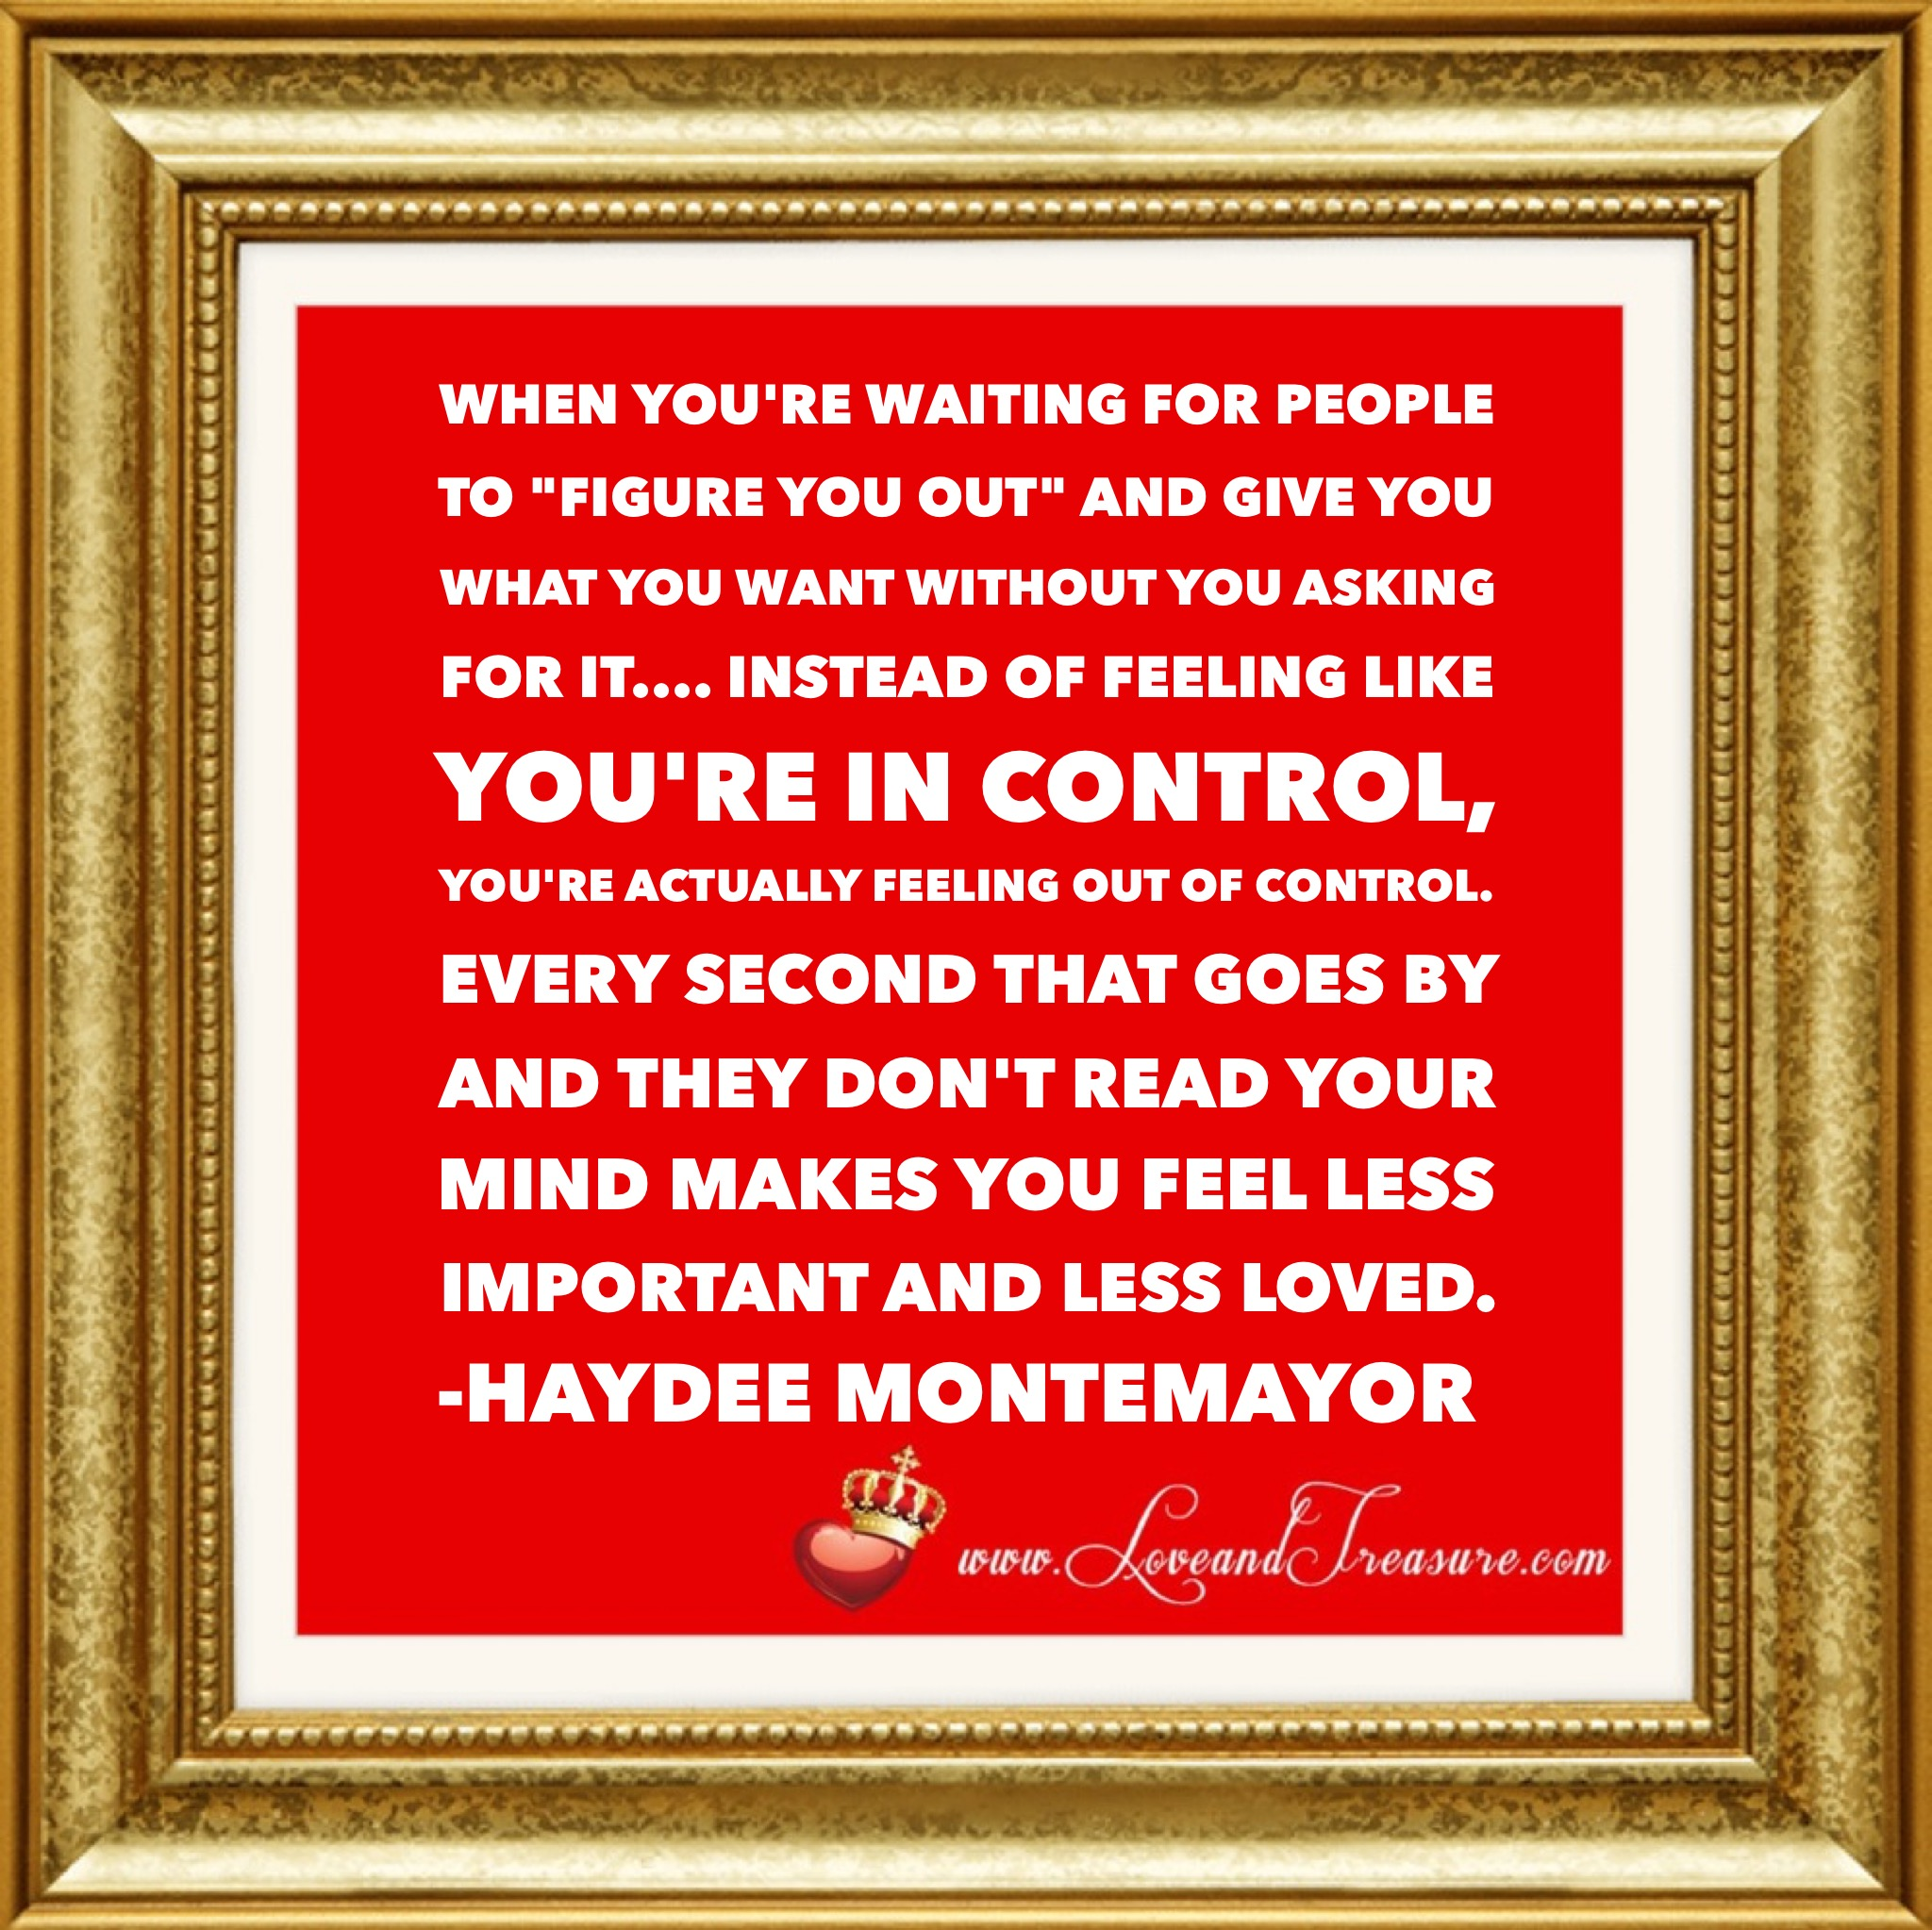 When you're waiting for people to figure you out and give you what you want without you asking for it, instead of feeling like you're in control, you're actually feeling like you're out of control. Every second that goes by and they don't read your mind makes you feel less important and less loved. Quotation by Haydee Montemayor from Love and Treasure blog at www.loveandtreasure.com